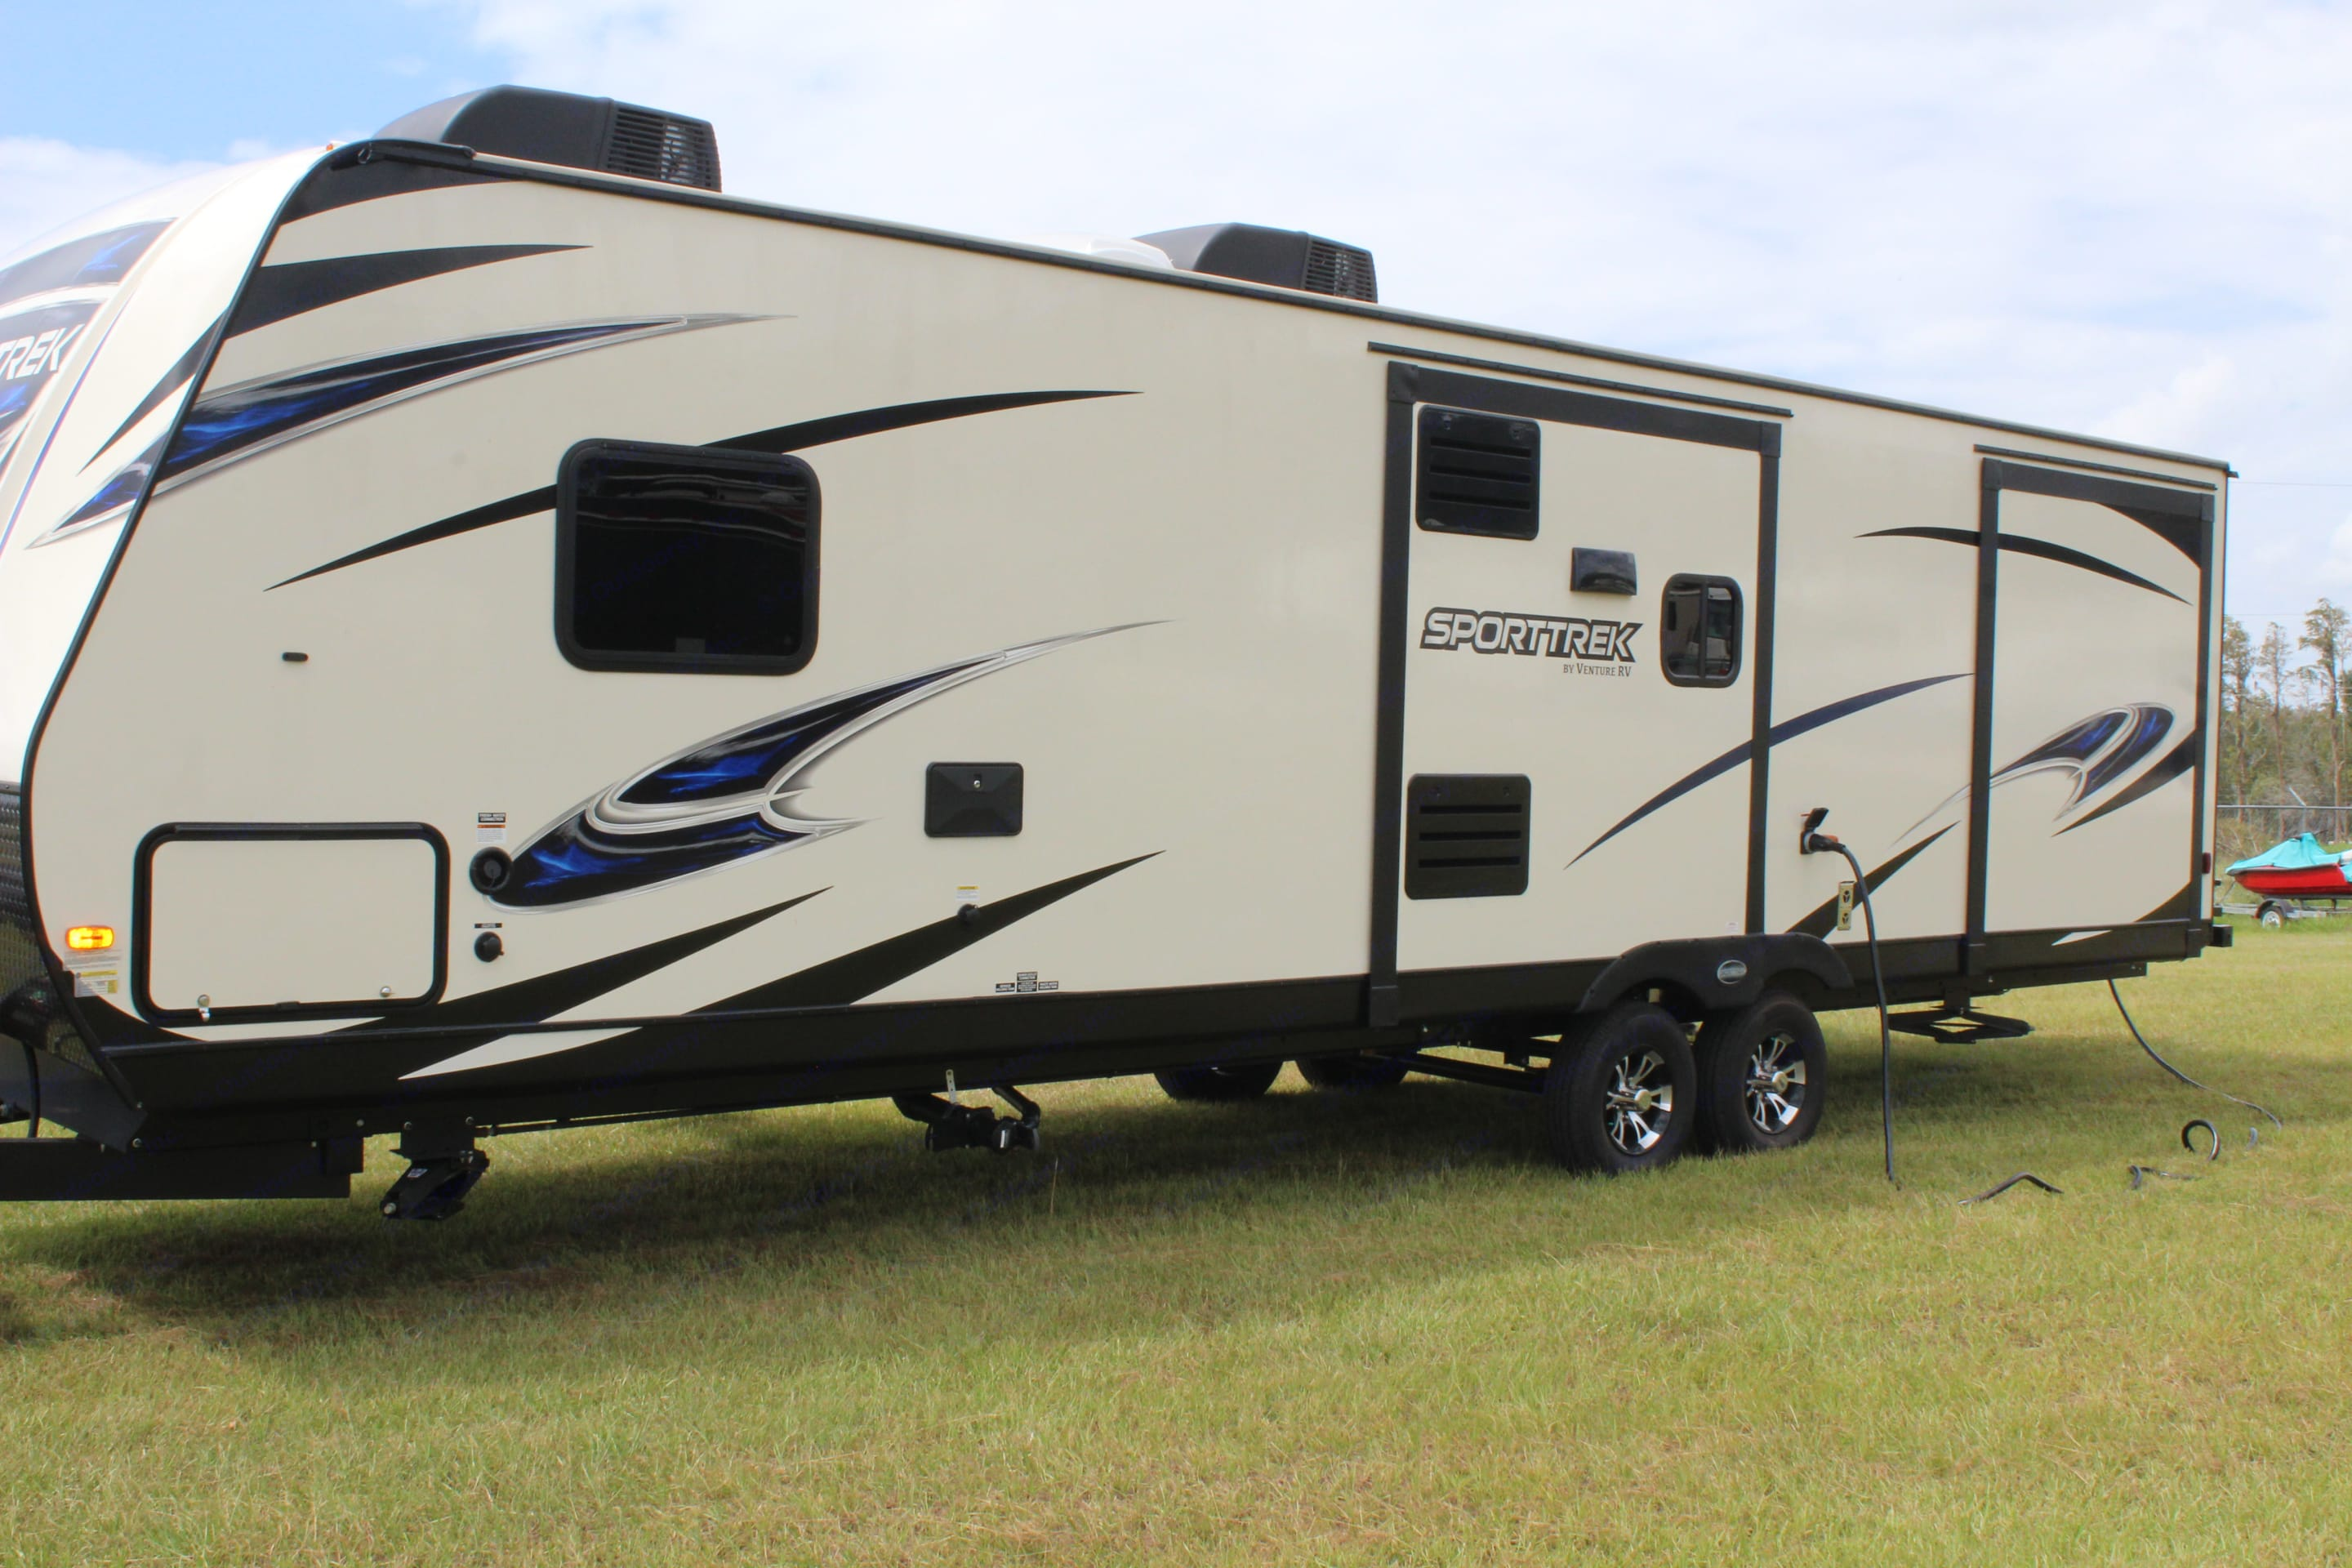 Other exterior view of the RV, which shows the other two slides as well as the front through storage area. . Venture Rv Sporttrek 2018